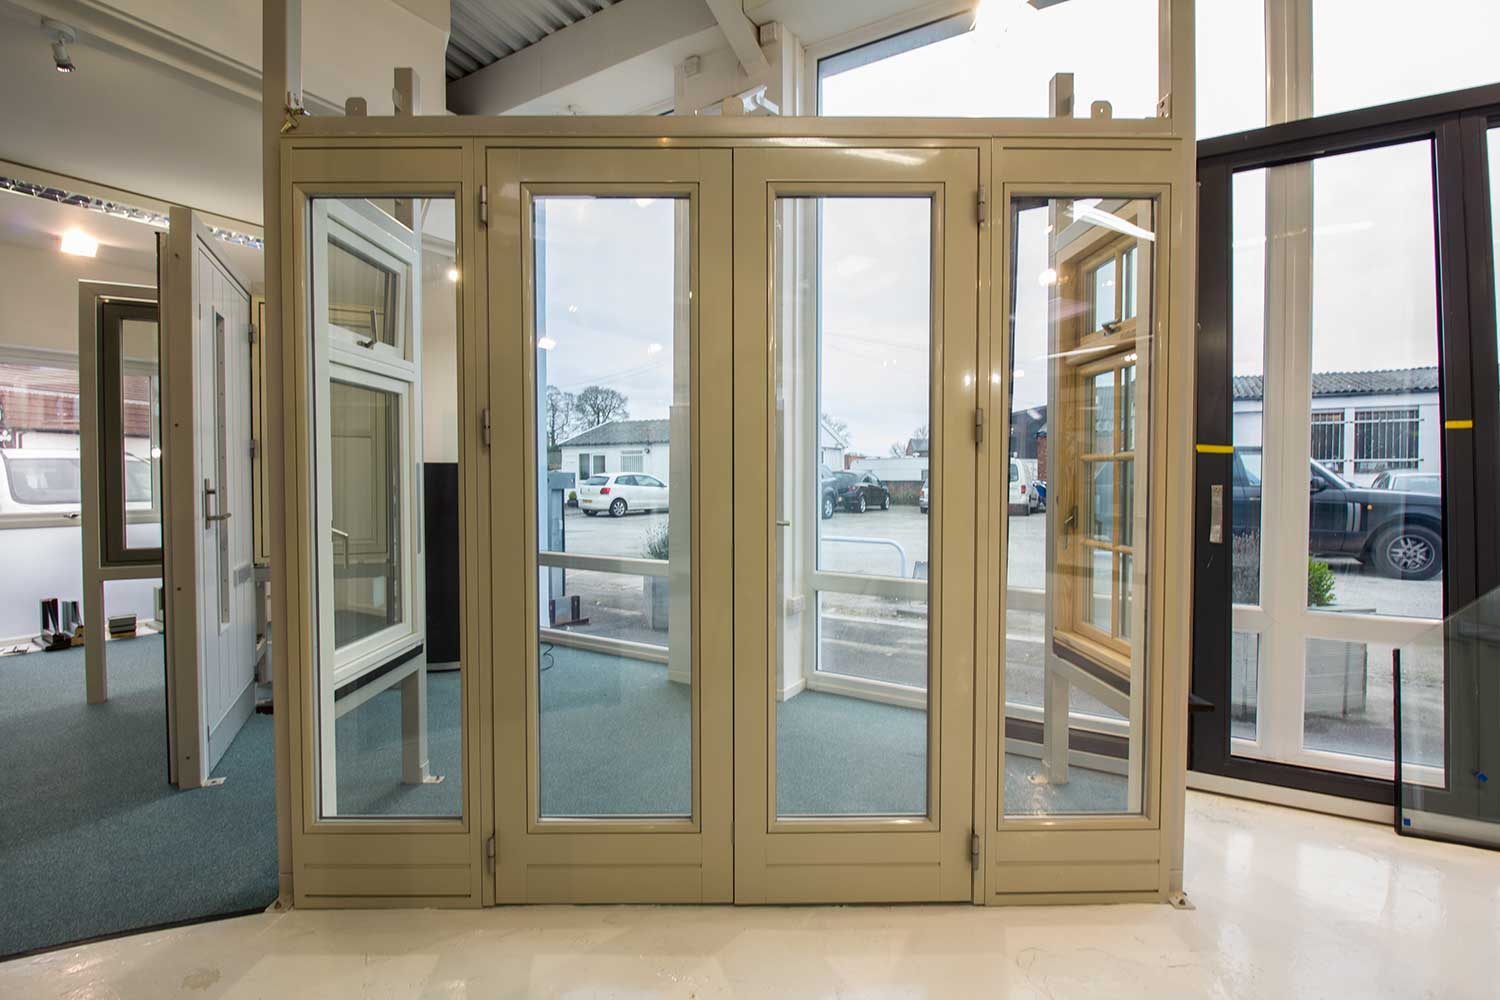 1000 #786847 French Doors Patio Doors And Double Doors John Knight Glass image Aluminum Clad Patio Doors 47231500